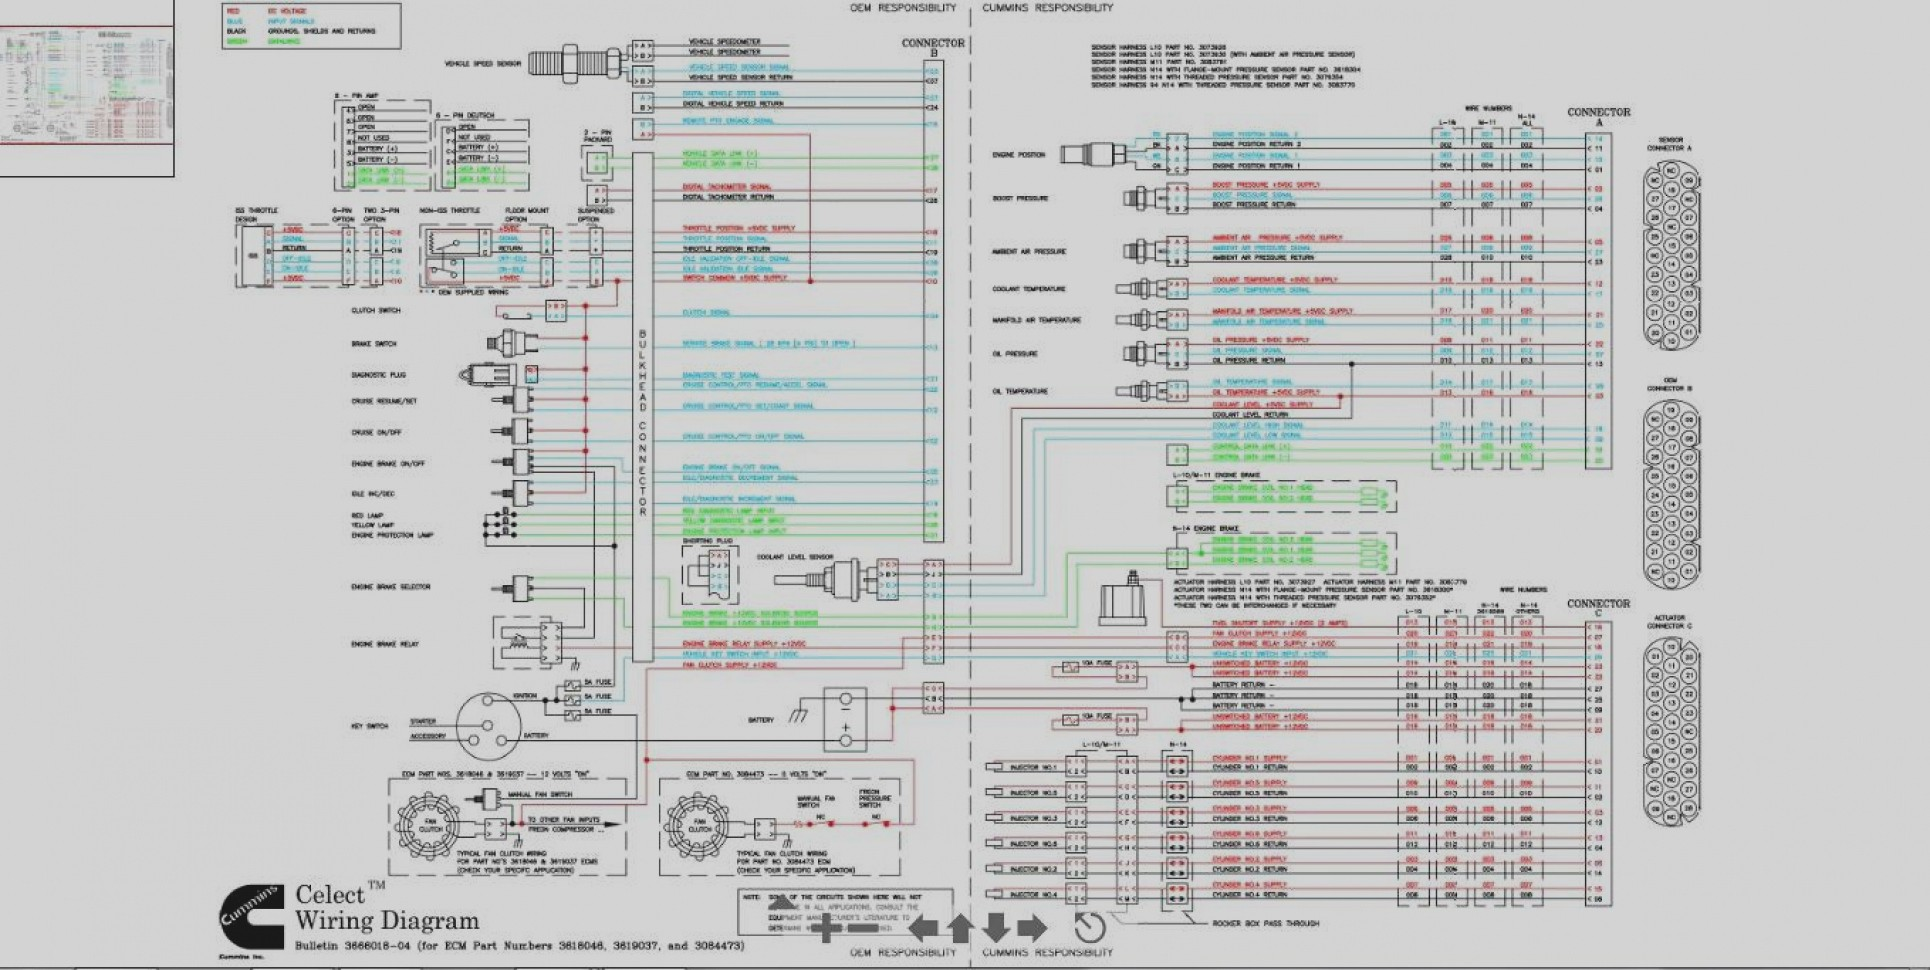 hight resolution of beautiful cummins isc engine wiring diagram celect plus servicio rh sidonline info cummins isb wiring diagram